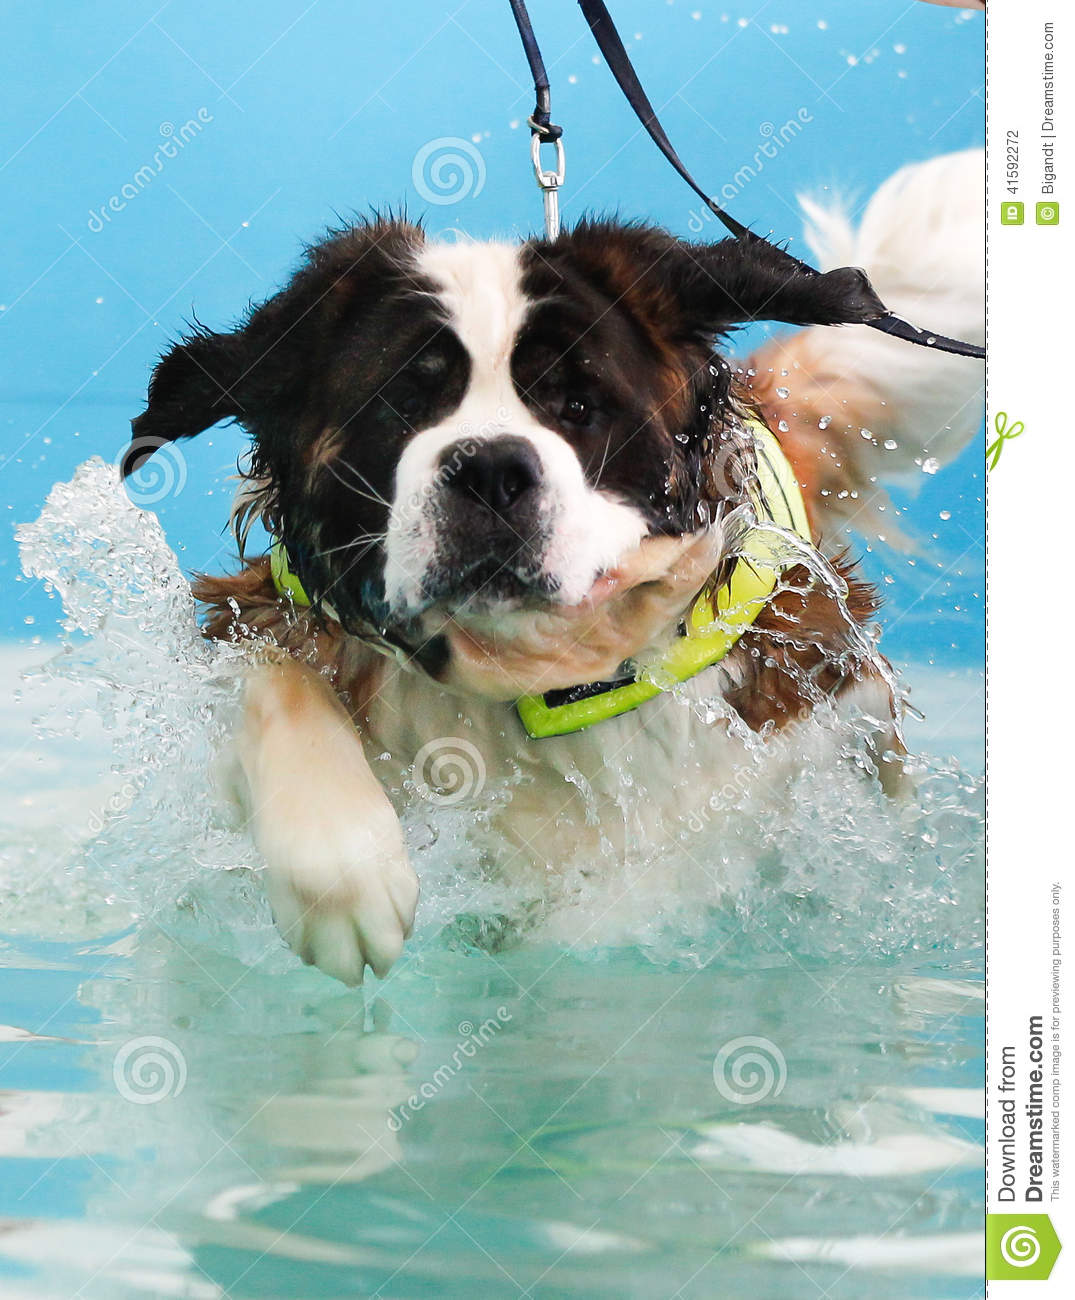 st bernard dog taking a swim stock photo image 41592272